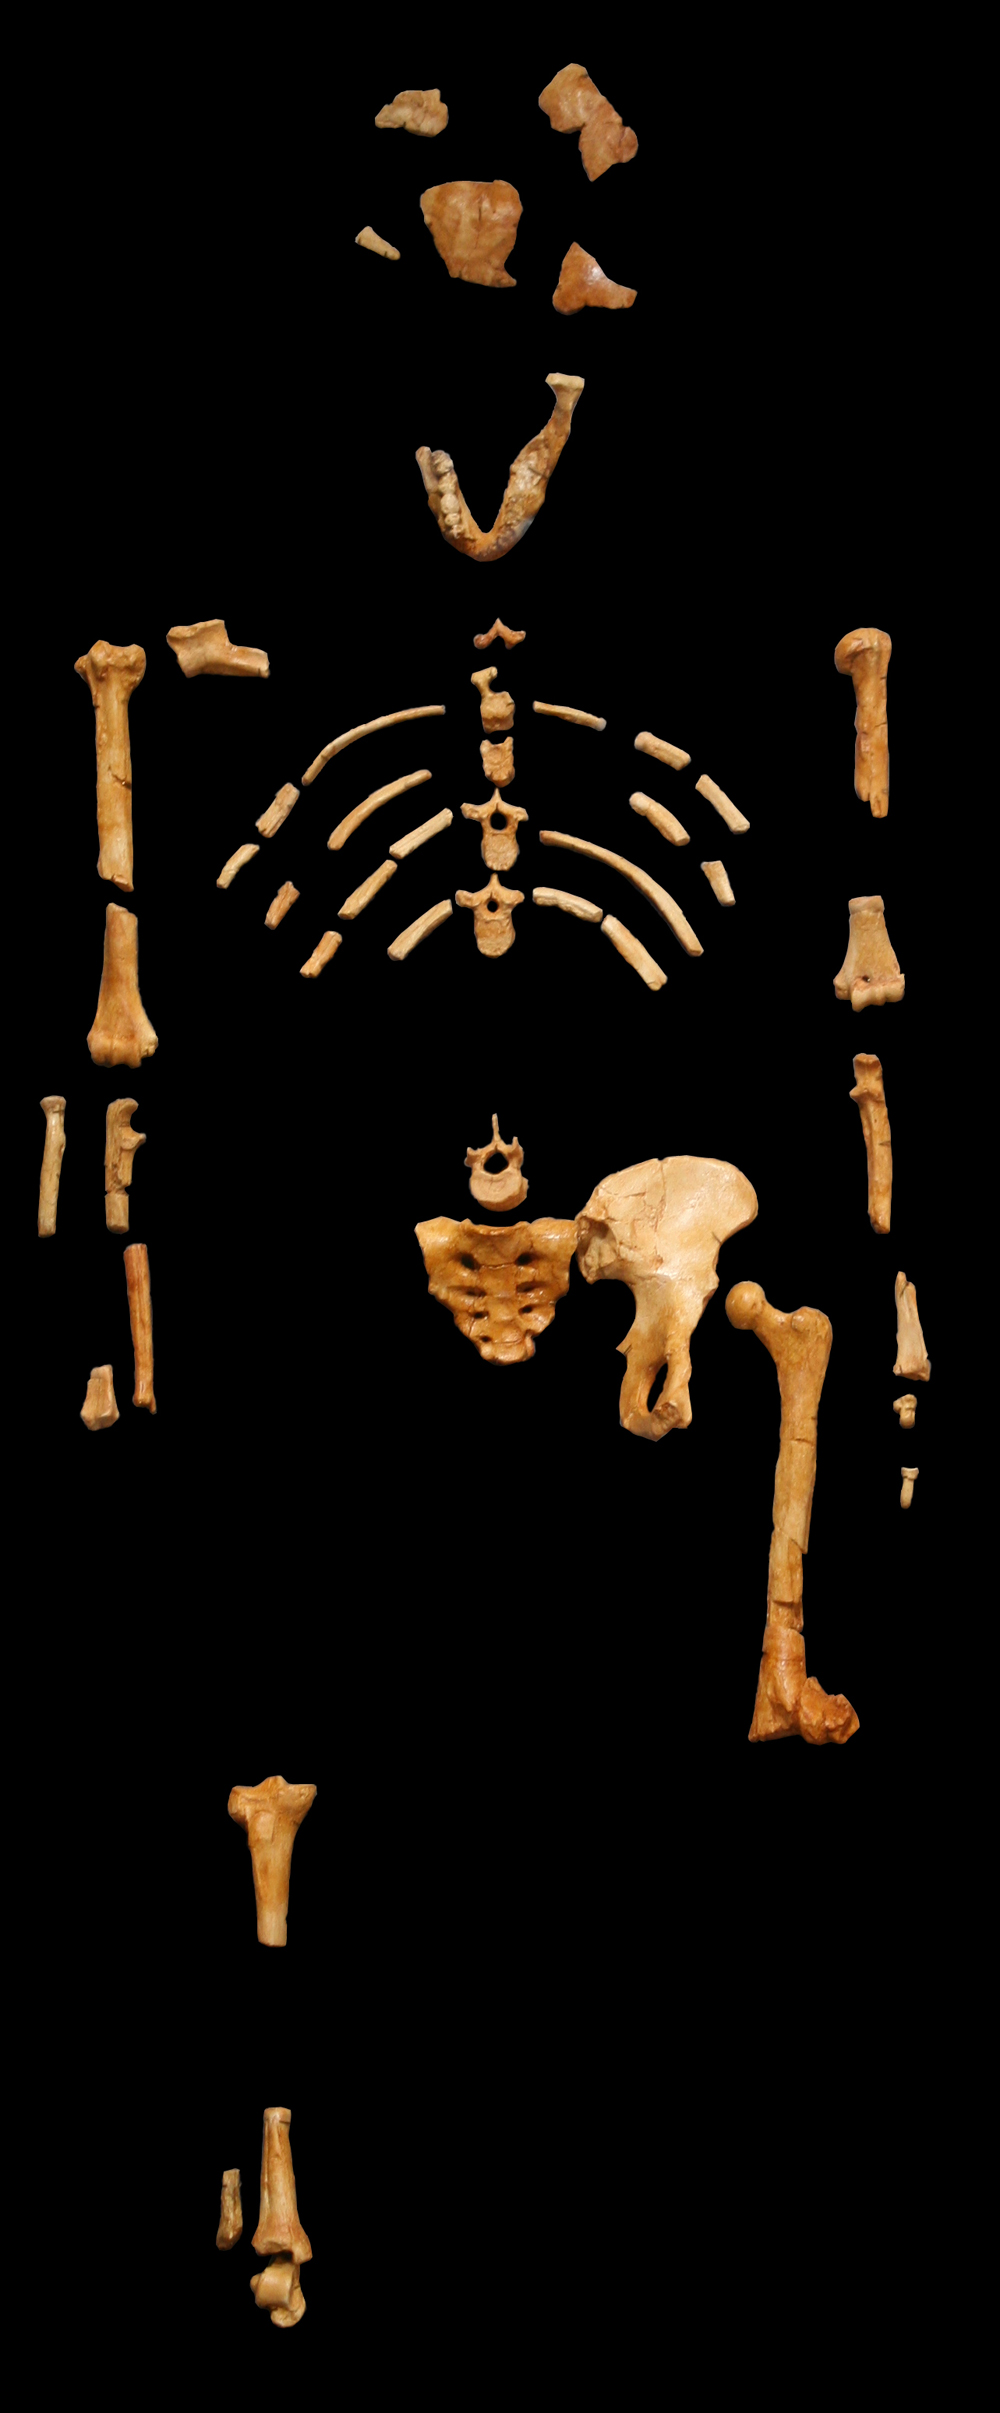 The skeleton of Lucy, an Australopithecus afarensis, photographed at the Museum national d'histoire naturelle, Paris, via Wikimedia